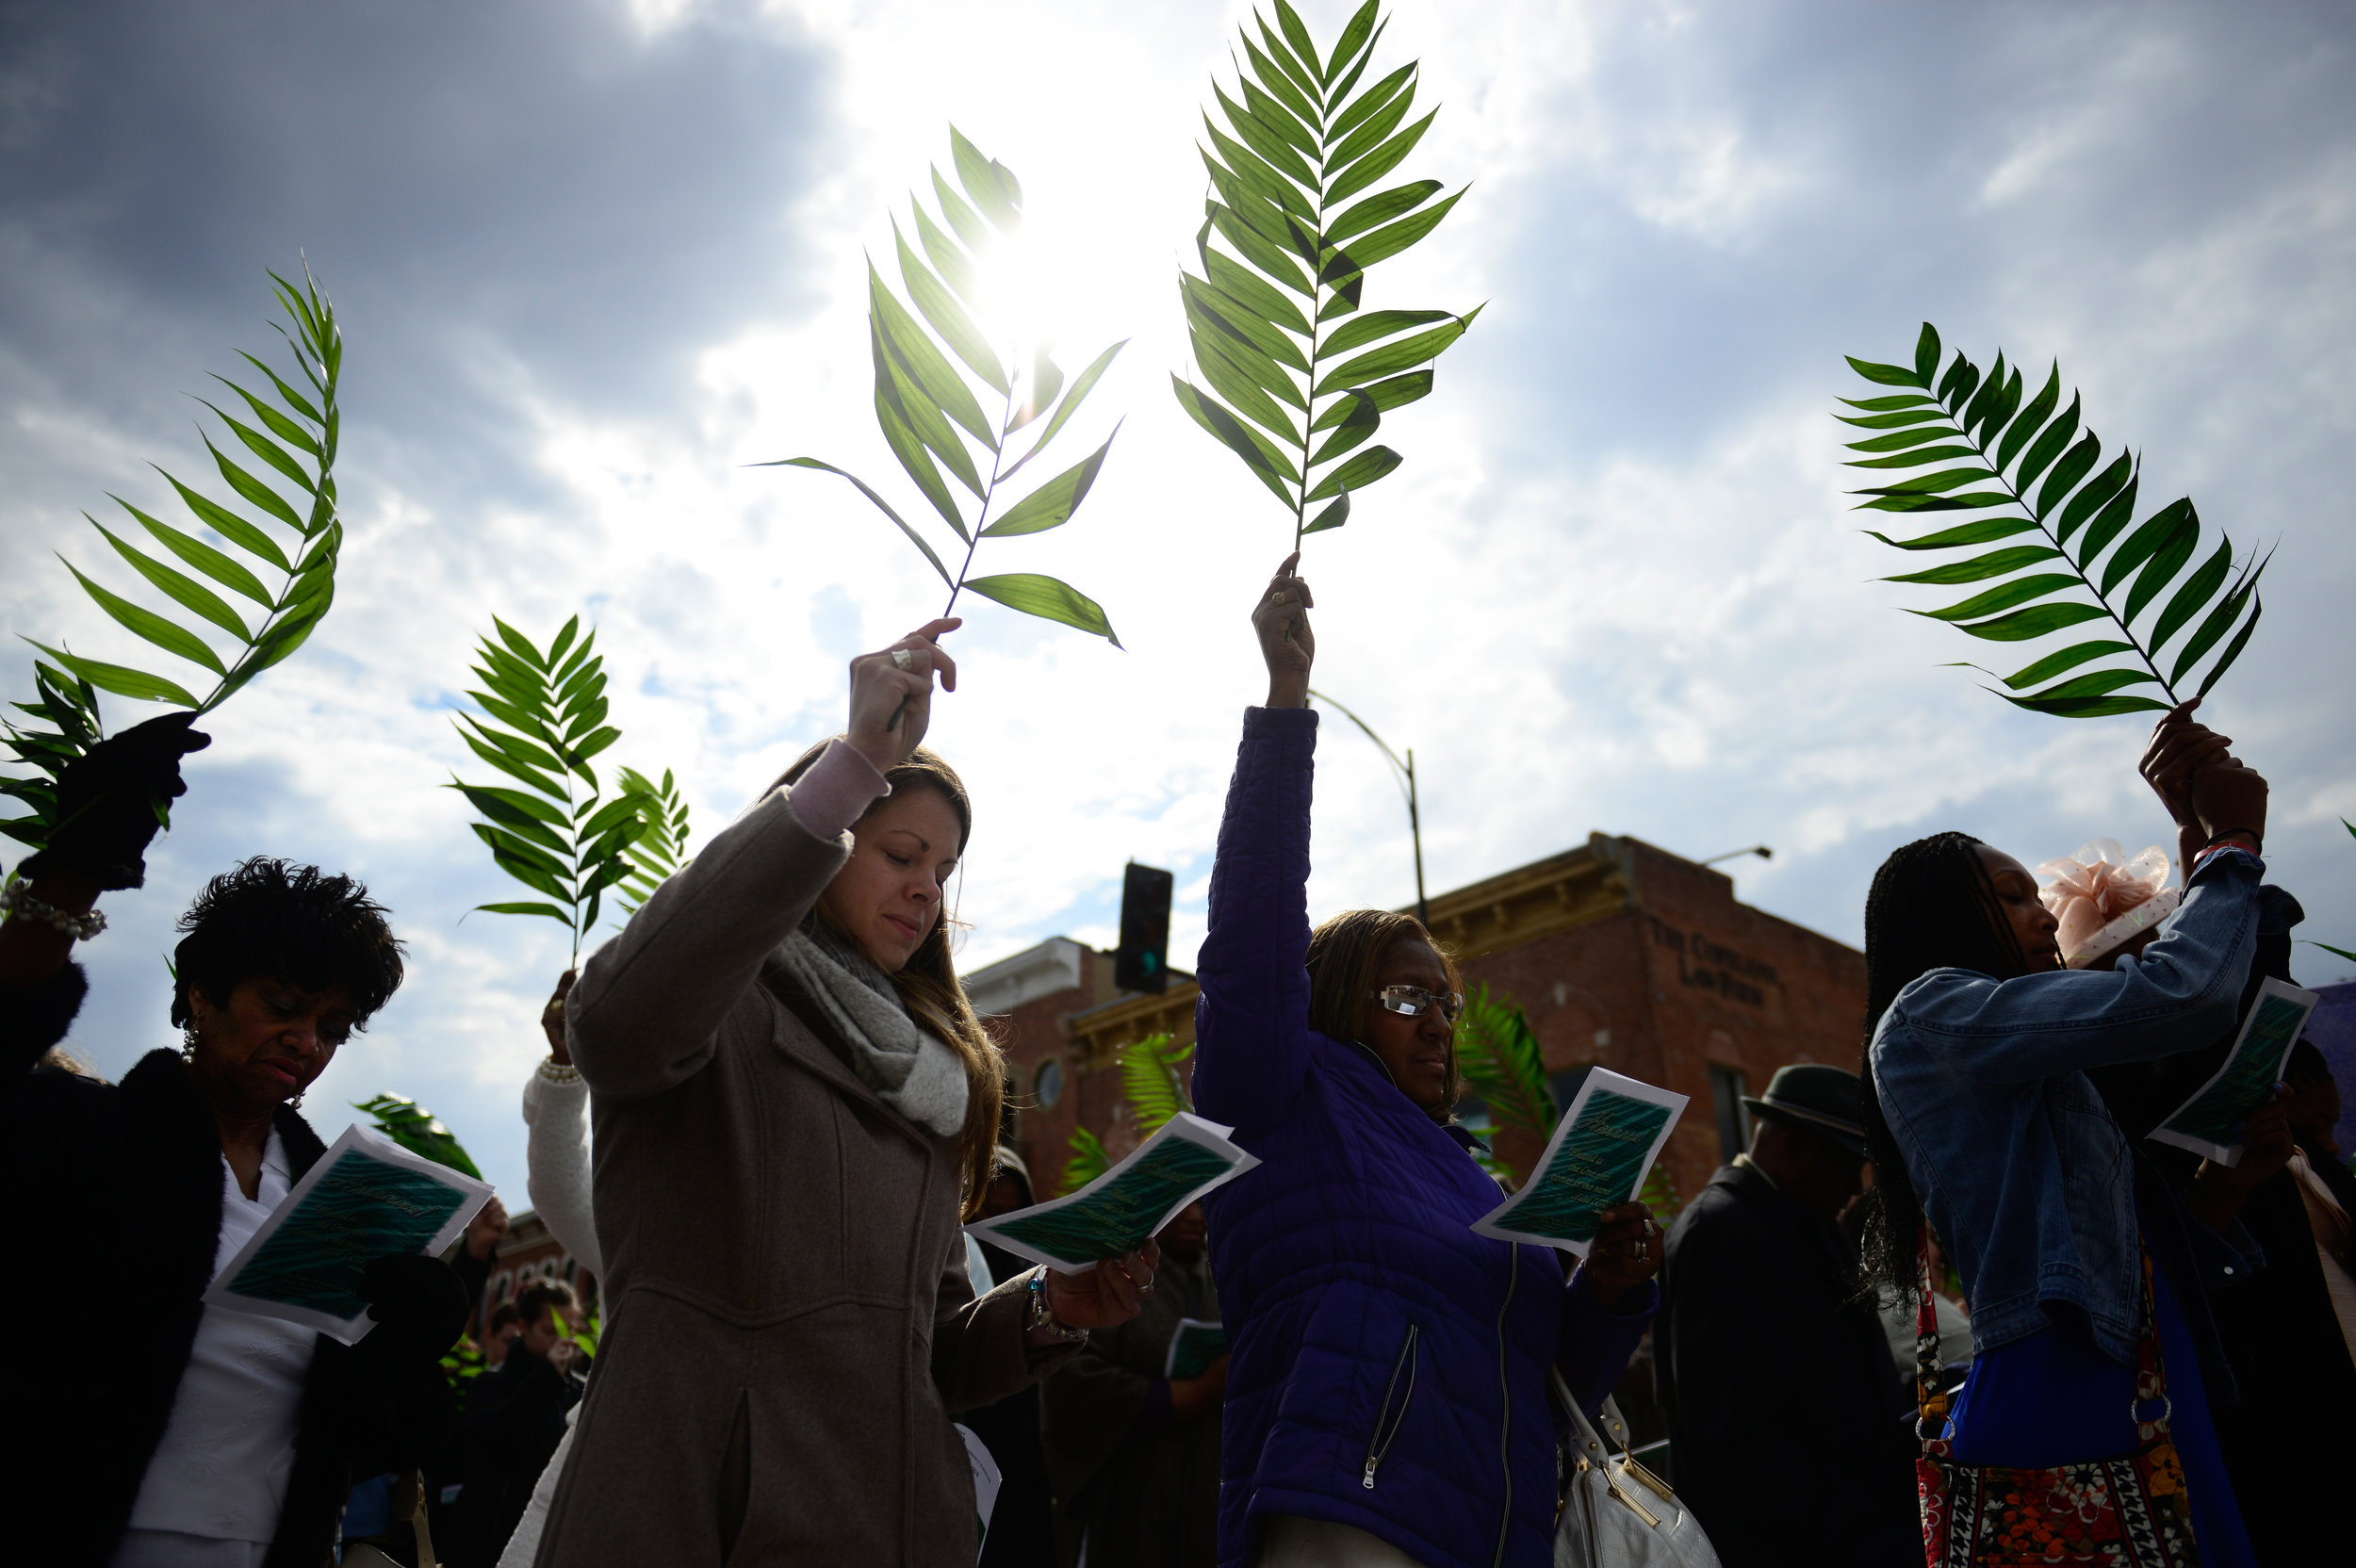 People raise their palm leaves during the Blessing of the Palms at the intersection of Ninth Street and Broadway in Columbia, MO, on Sunday, March 29, 2015. About nine churches from downtown Columbia participated in the event.